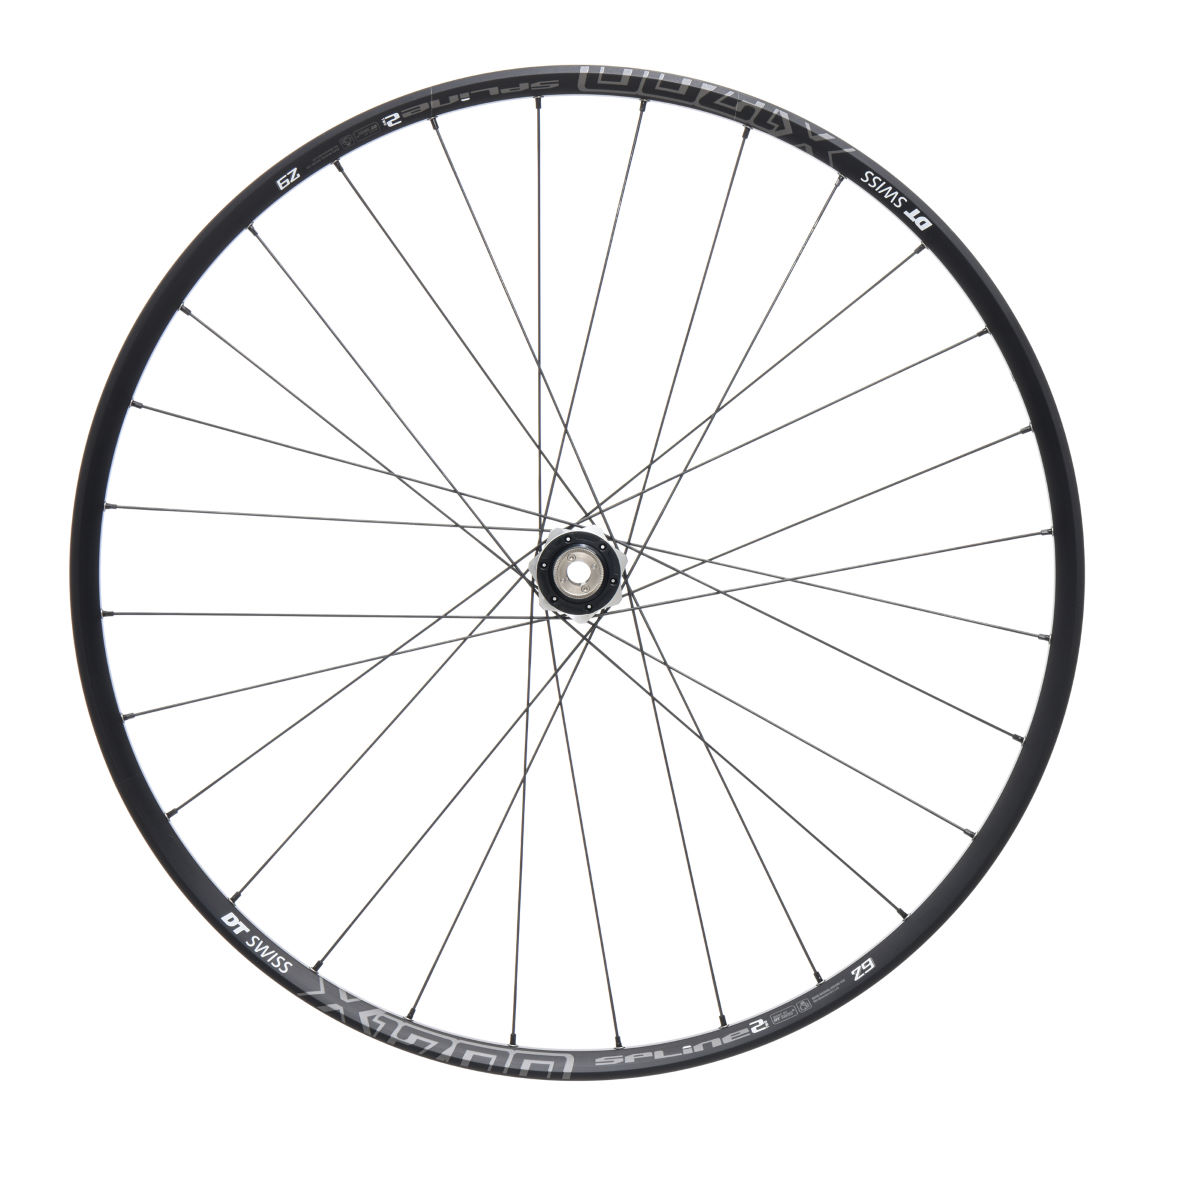 Roue avant VTT DT Swiss X 1700 Spline Two Boost - 29'' - 15x110mm